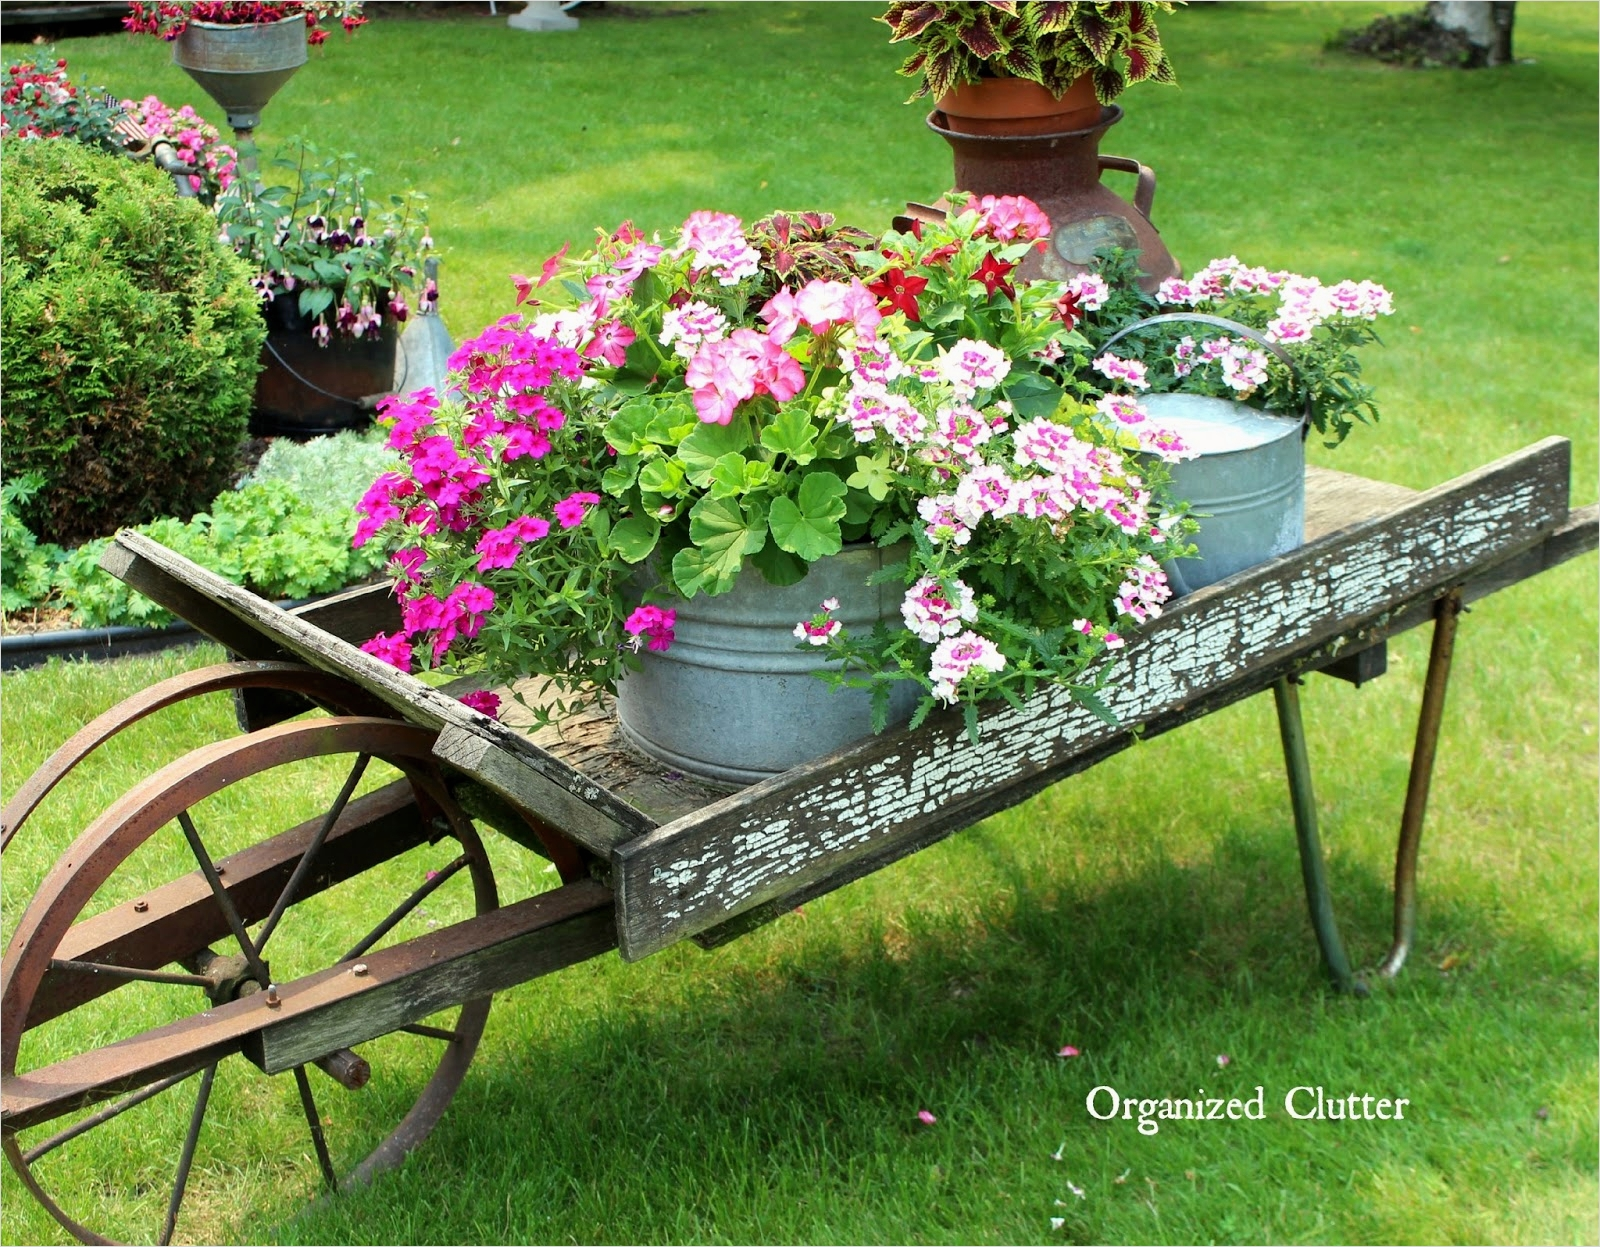 44 Amazing Rustic Garden Ideas 22 Rustic Garden Wheelbarrow 2015 9